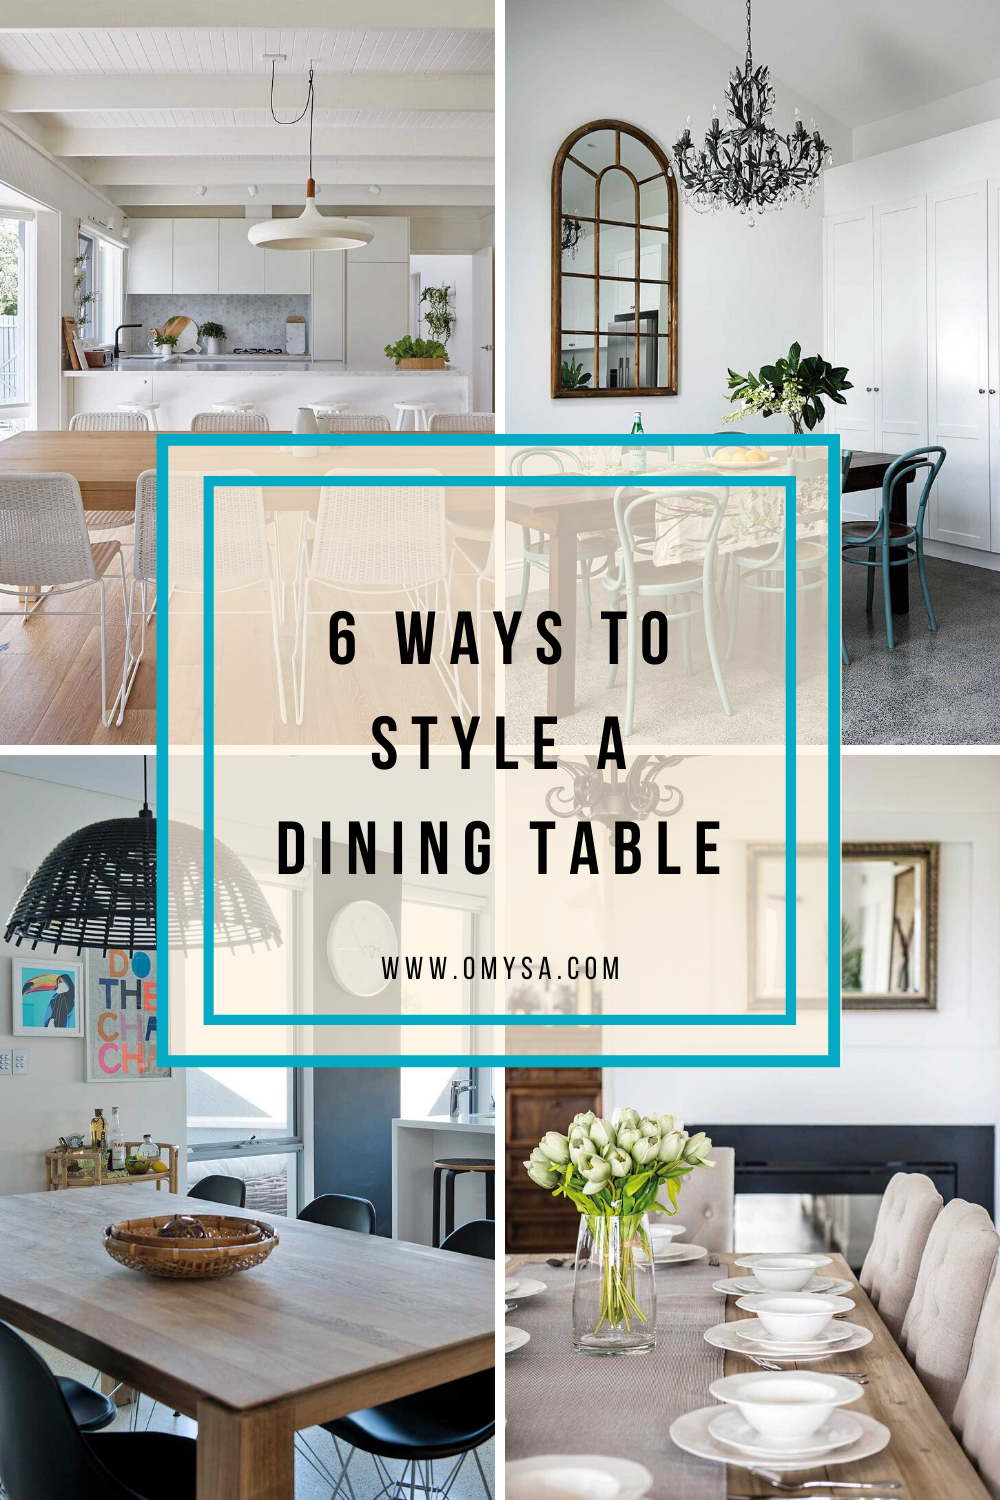 How To Style Your Dining Table Dining Table Styling Ideas For The Everyday Dinning Table Centerpiece Dining Table Centerpiece Dinner Table Decor